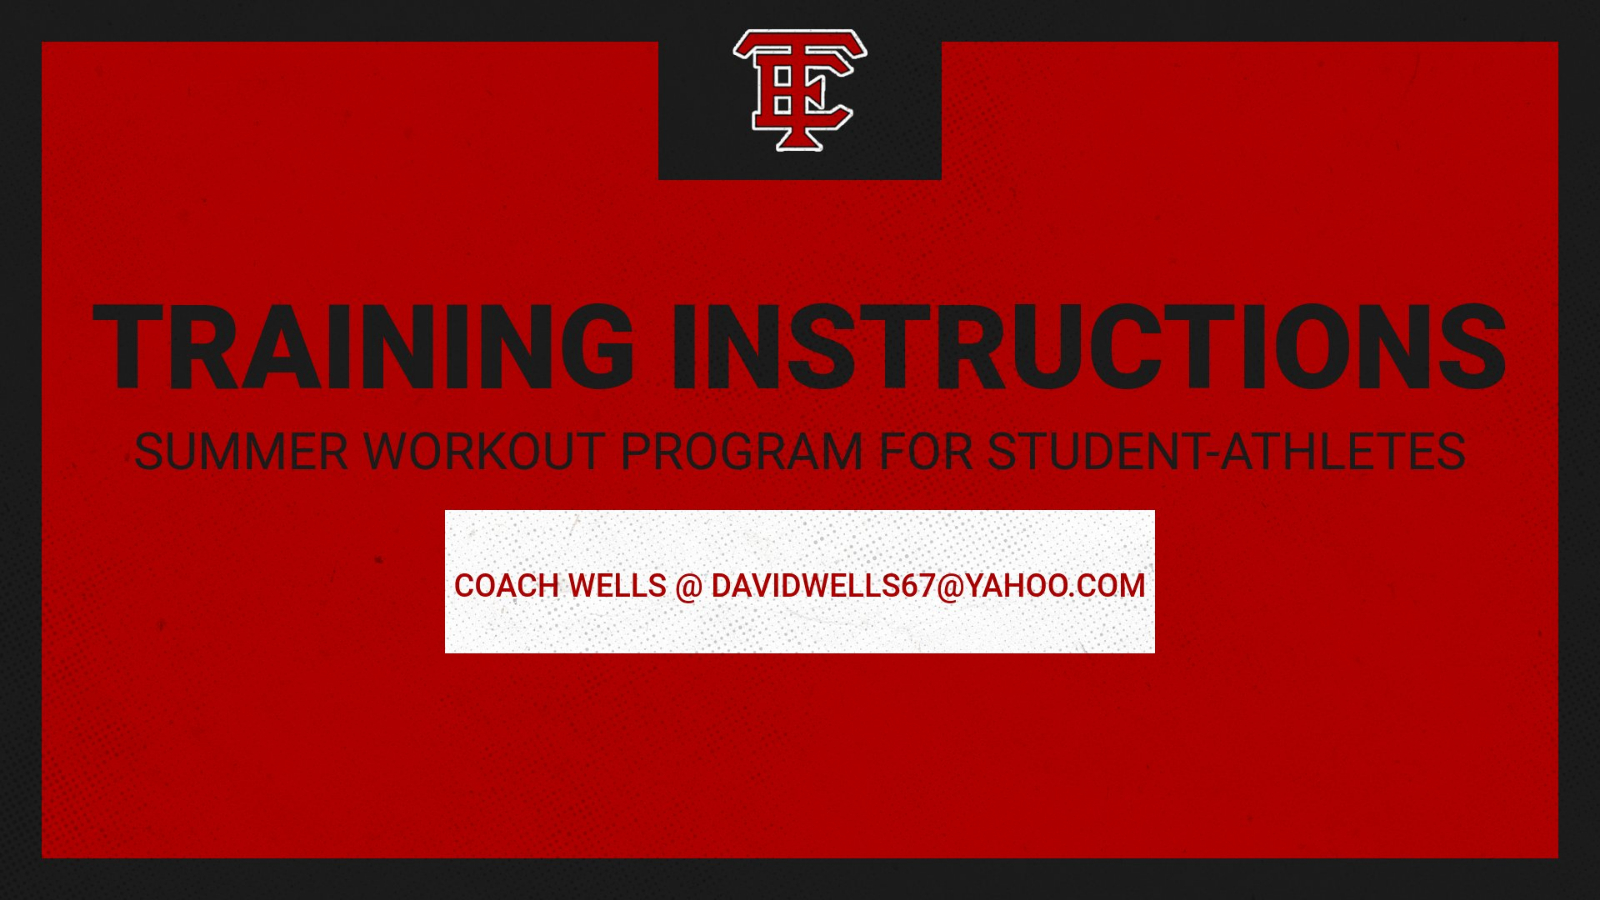 Summer Workout Program – Lifting/Conditioning